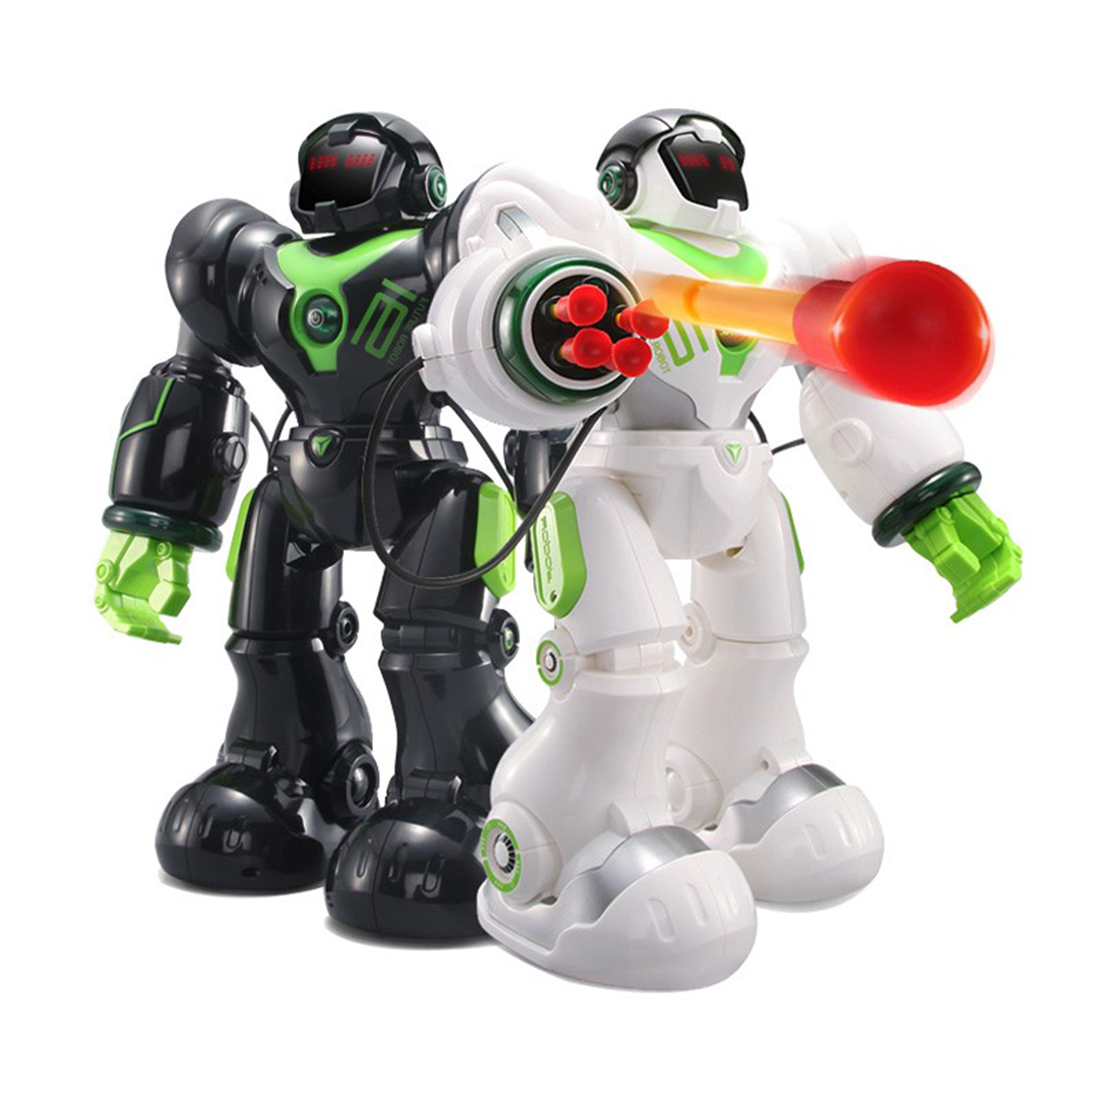 2019 New RC Machinery Robot Toys With Programming Shooting Dancing Battle Functions For Children - Black/White2019 New RC Machinery Robot Toys With Programming Shooting Dancing Battle Functions For Children - Black/White